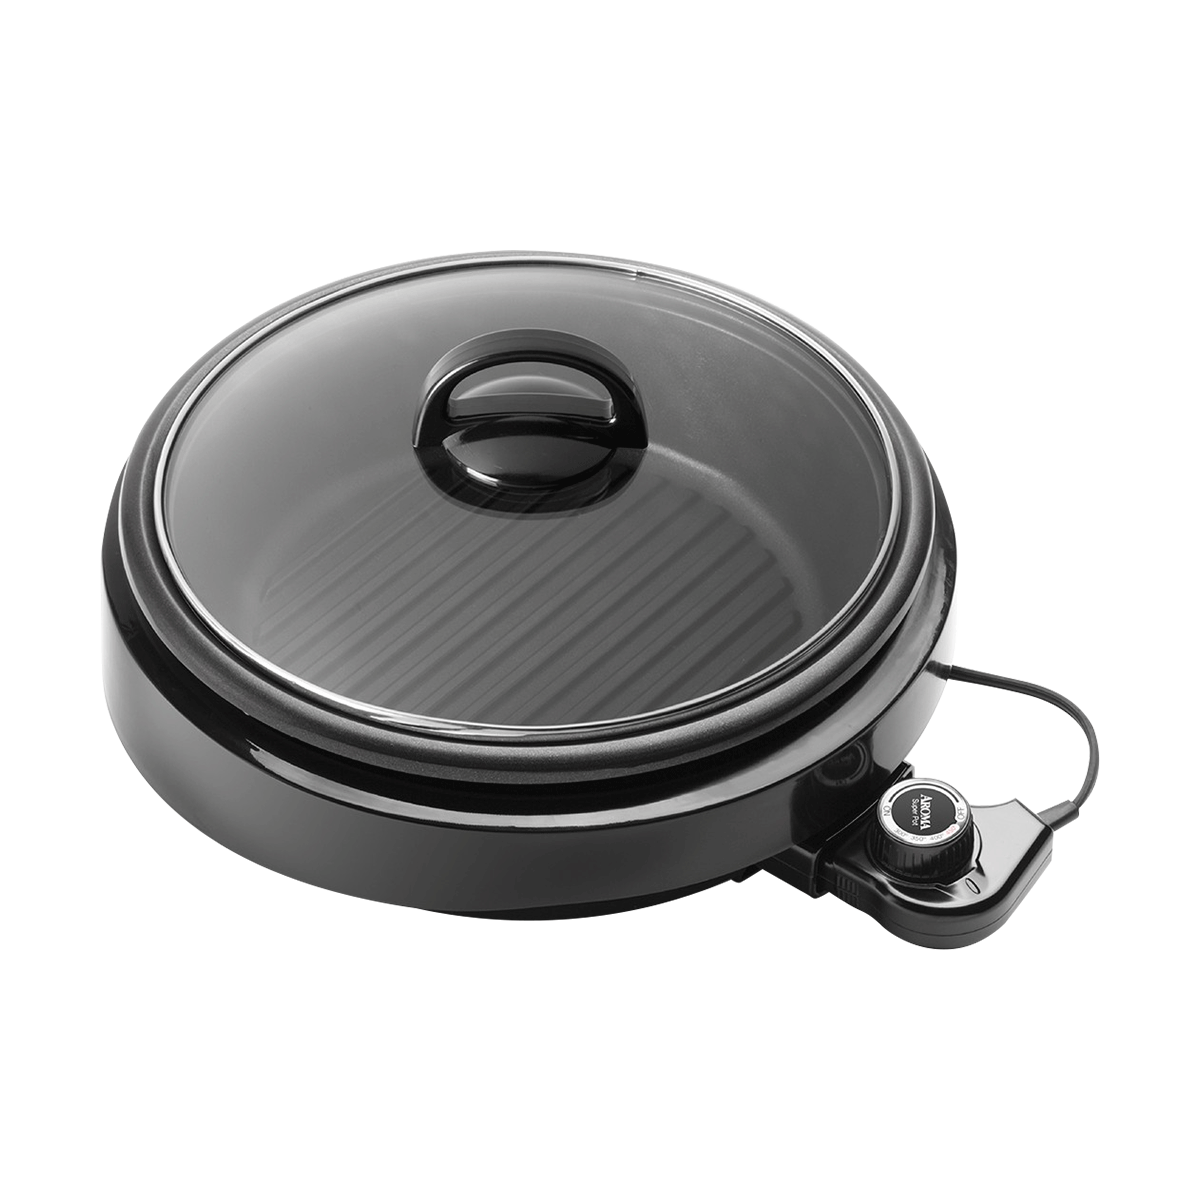 Yamibuy.com:Customer reviews:AROMA 3 in 1 Hot Pot With Grillet Plate ASP-137B 3QT #Black (2 Year Mfgr Warranty)